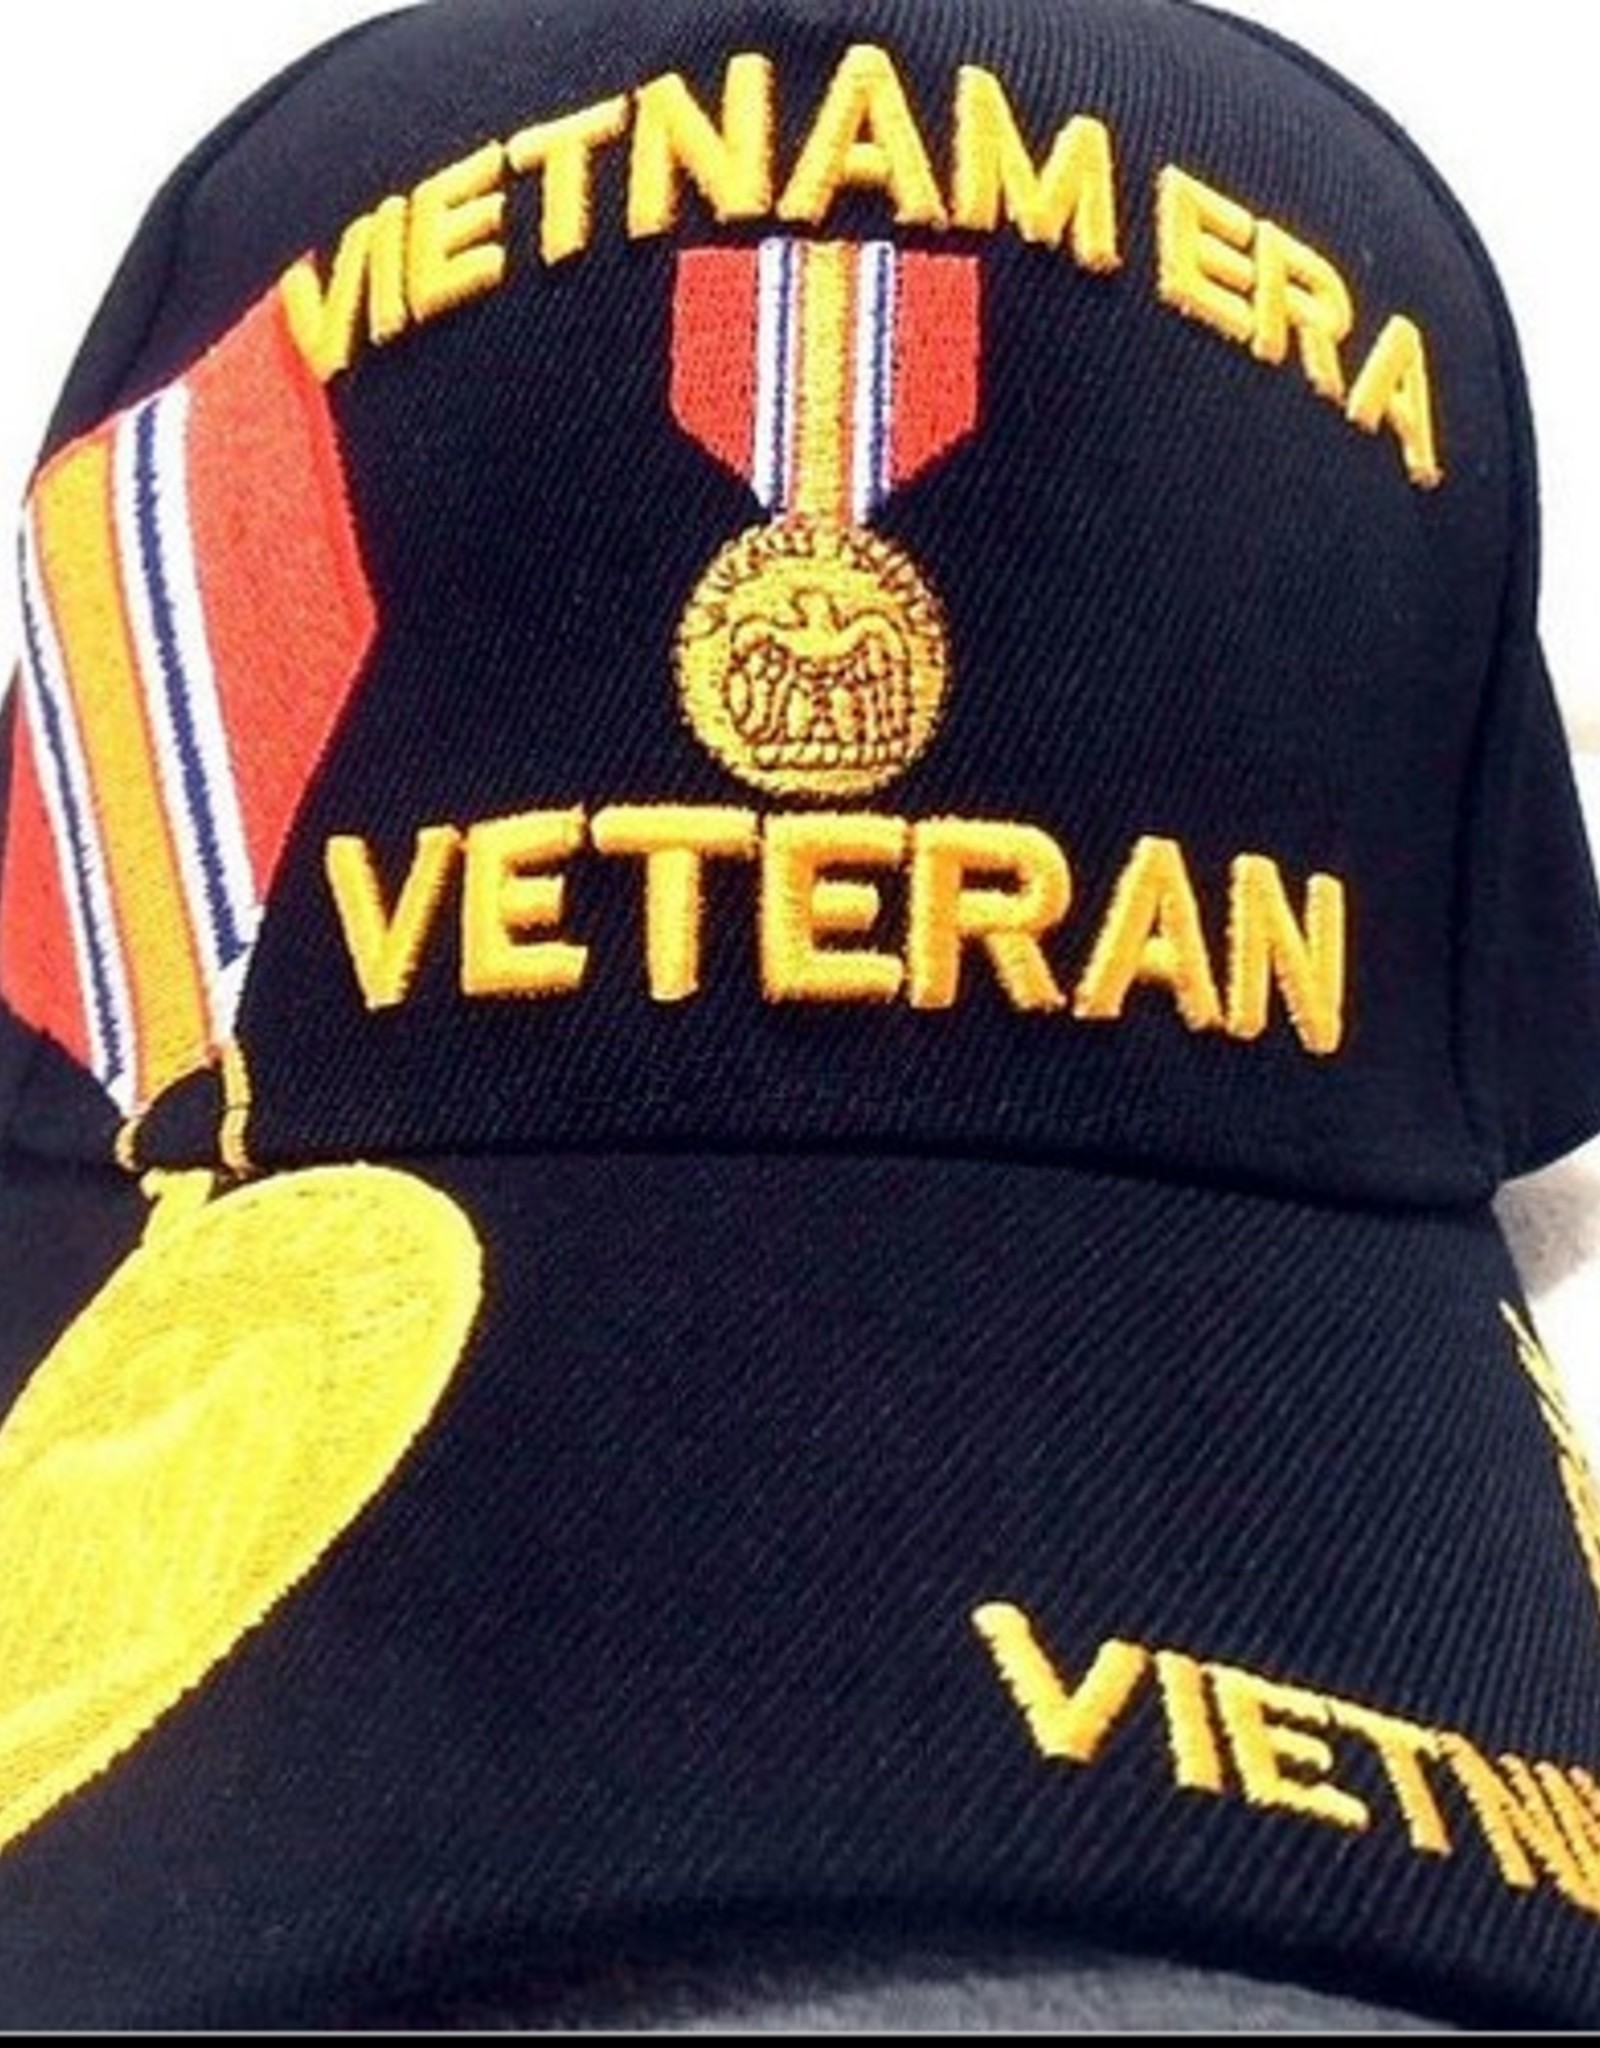 MidMil Vietnam Era Veteran Hat with National Defense Medal and Over Shadow Black